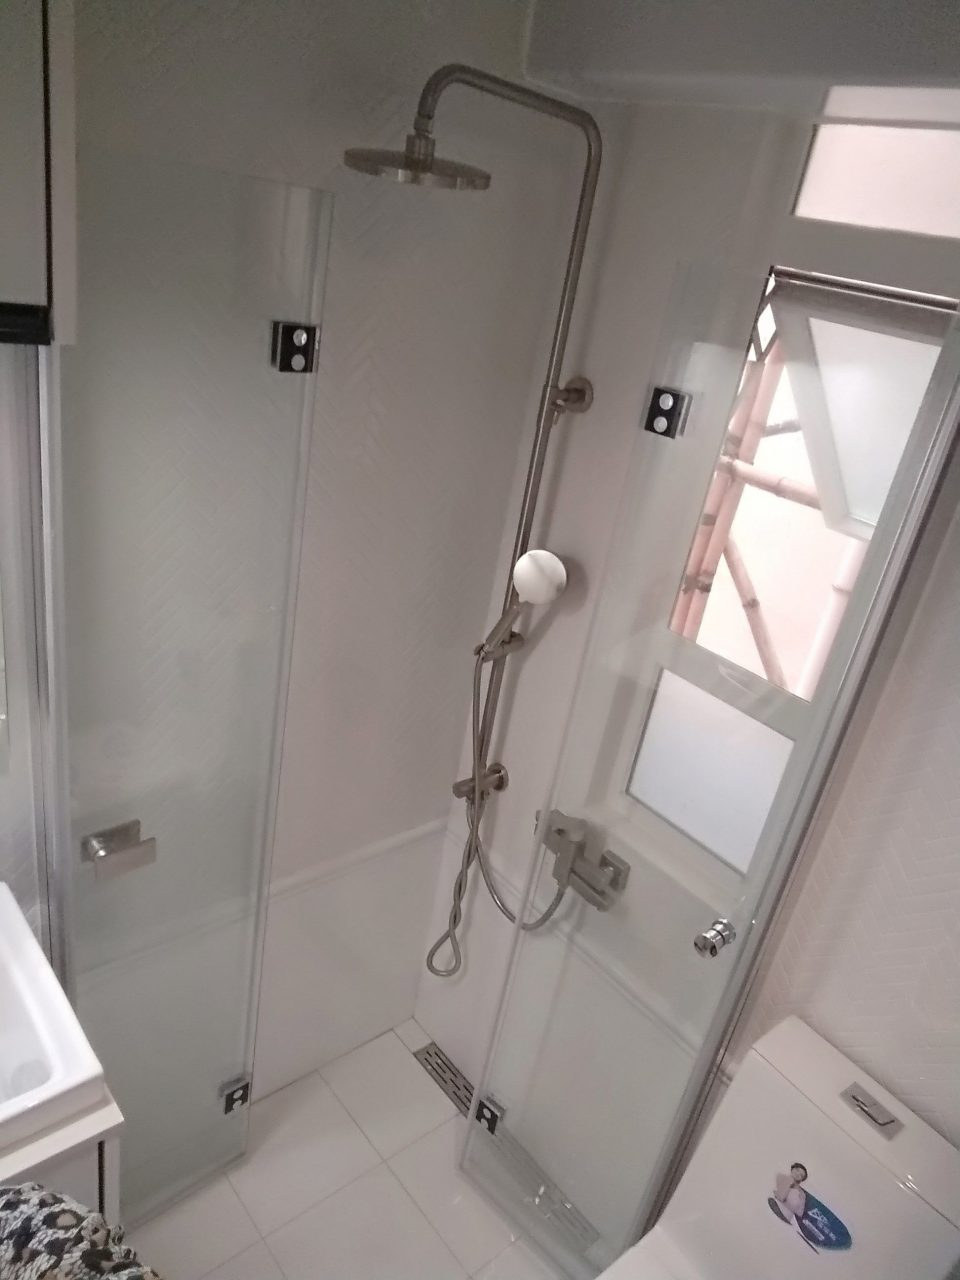 3 Sqm Small Tiny Bathroom Foldable Shower Screen Door Shower